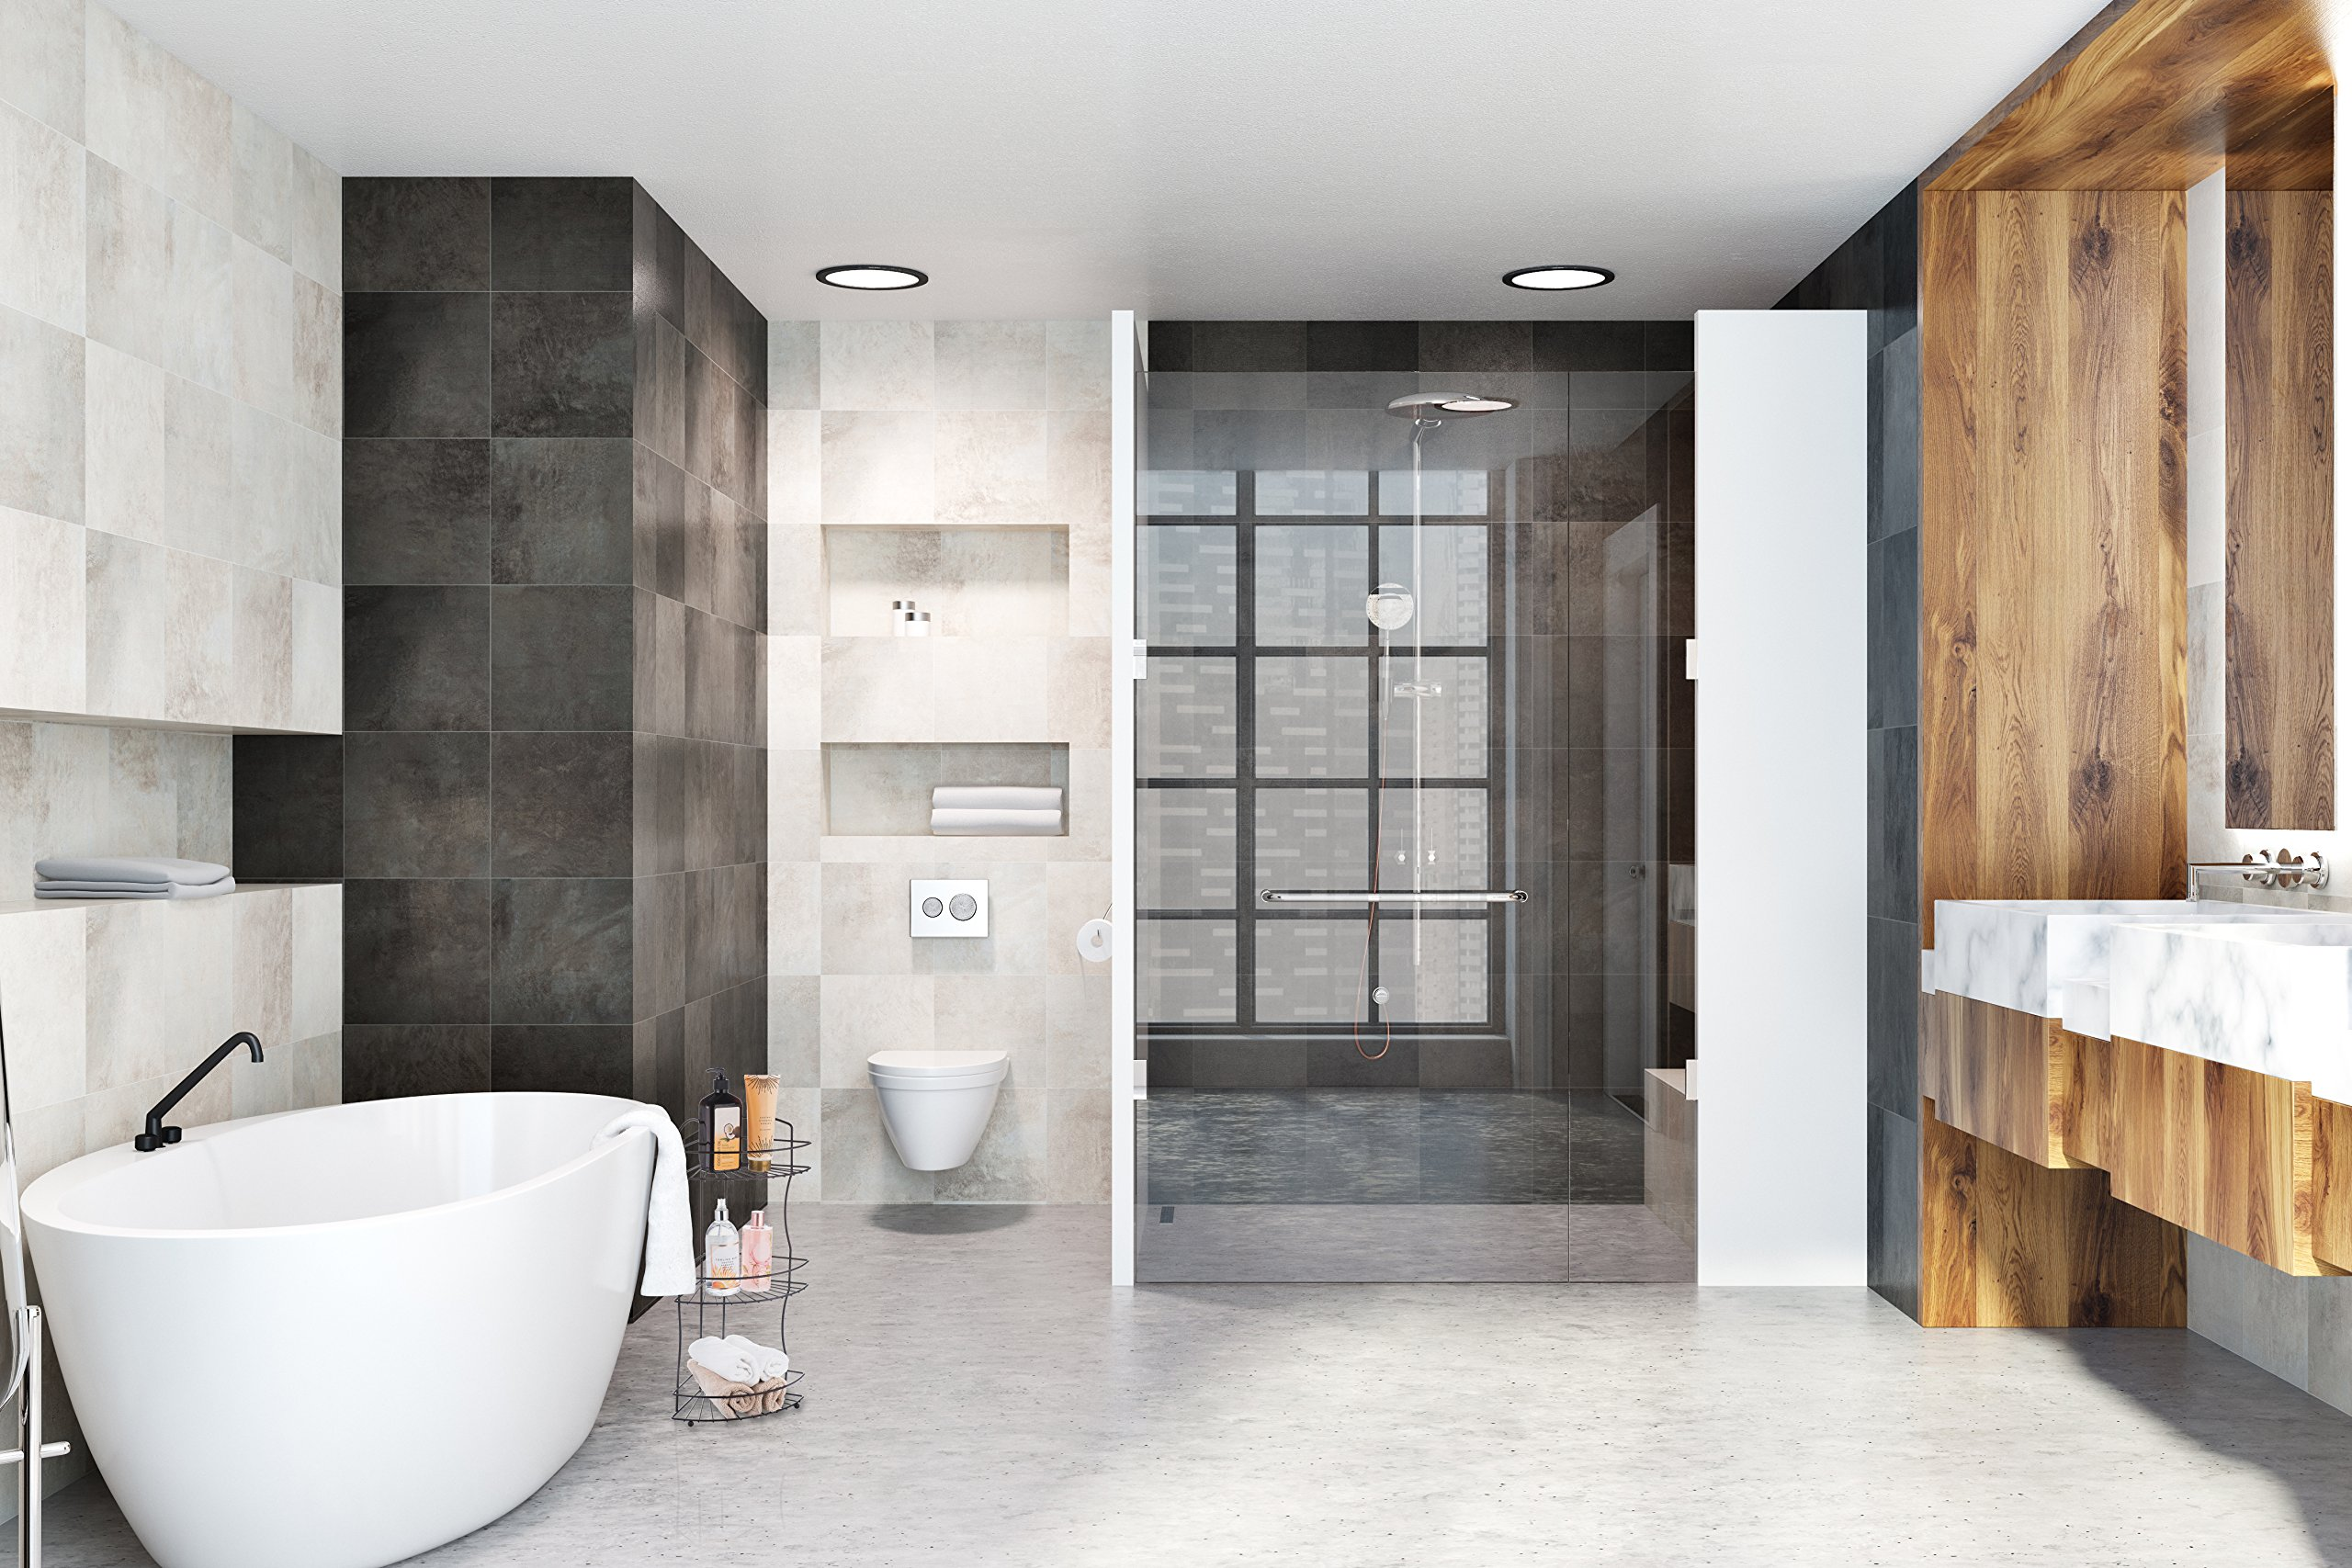 AMG and Enchante Accessories Free Standing Bathroom Spa Tower Floor Caddy, FC232-A BKN, Black Nickel by AMG (Image #4)